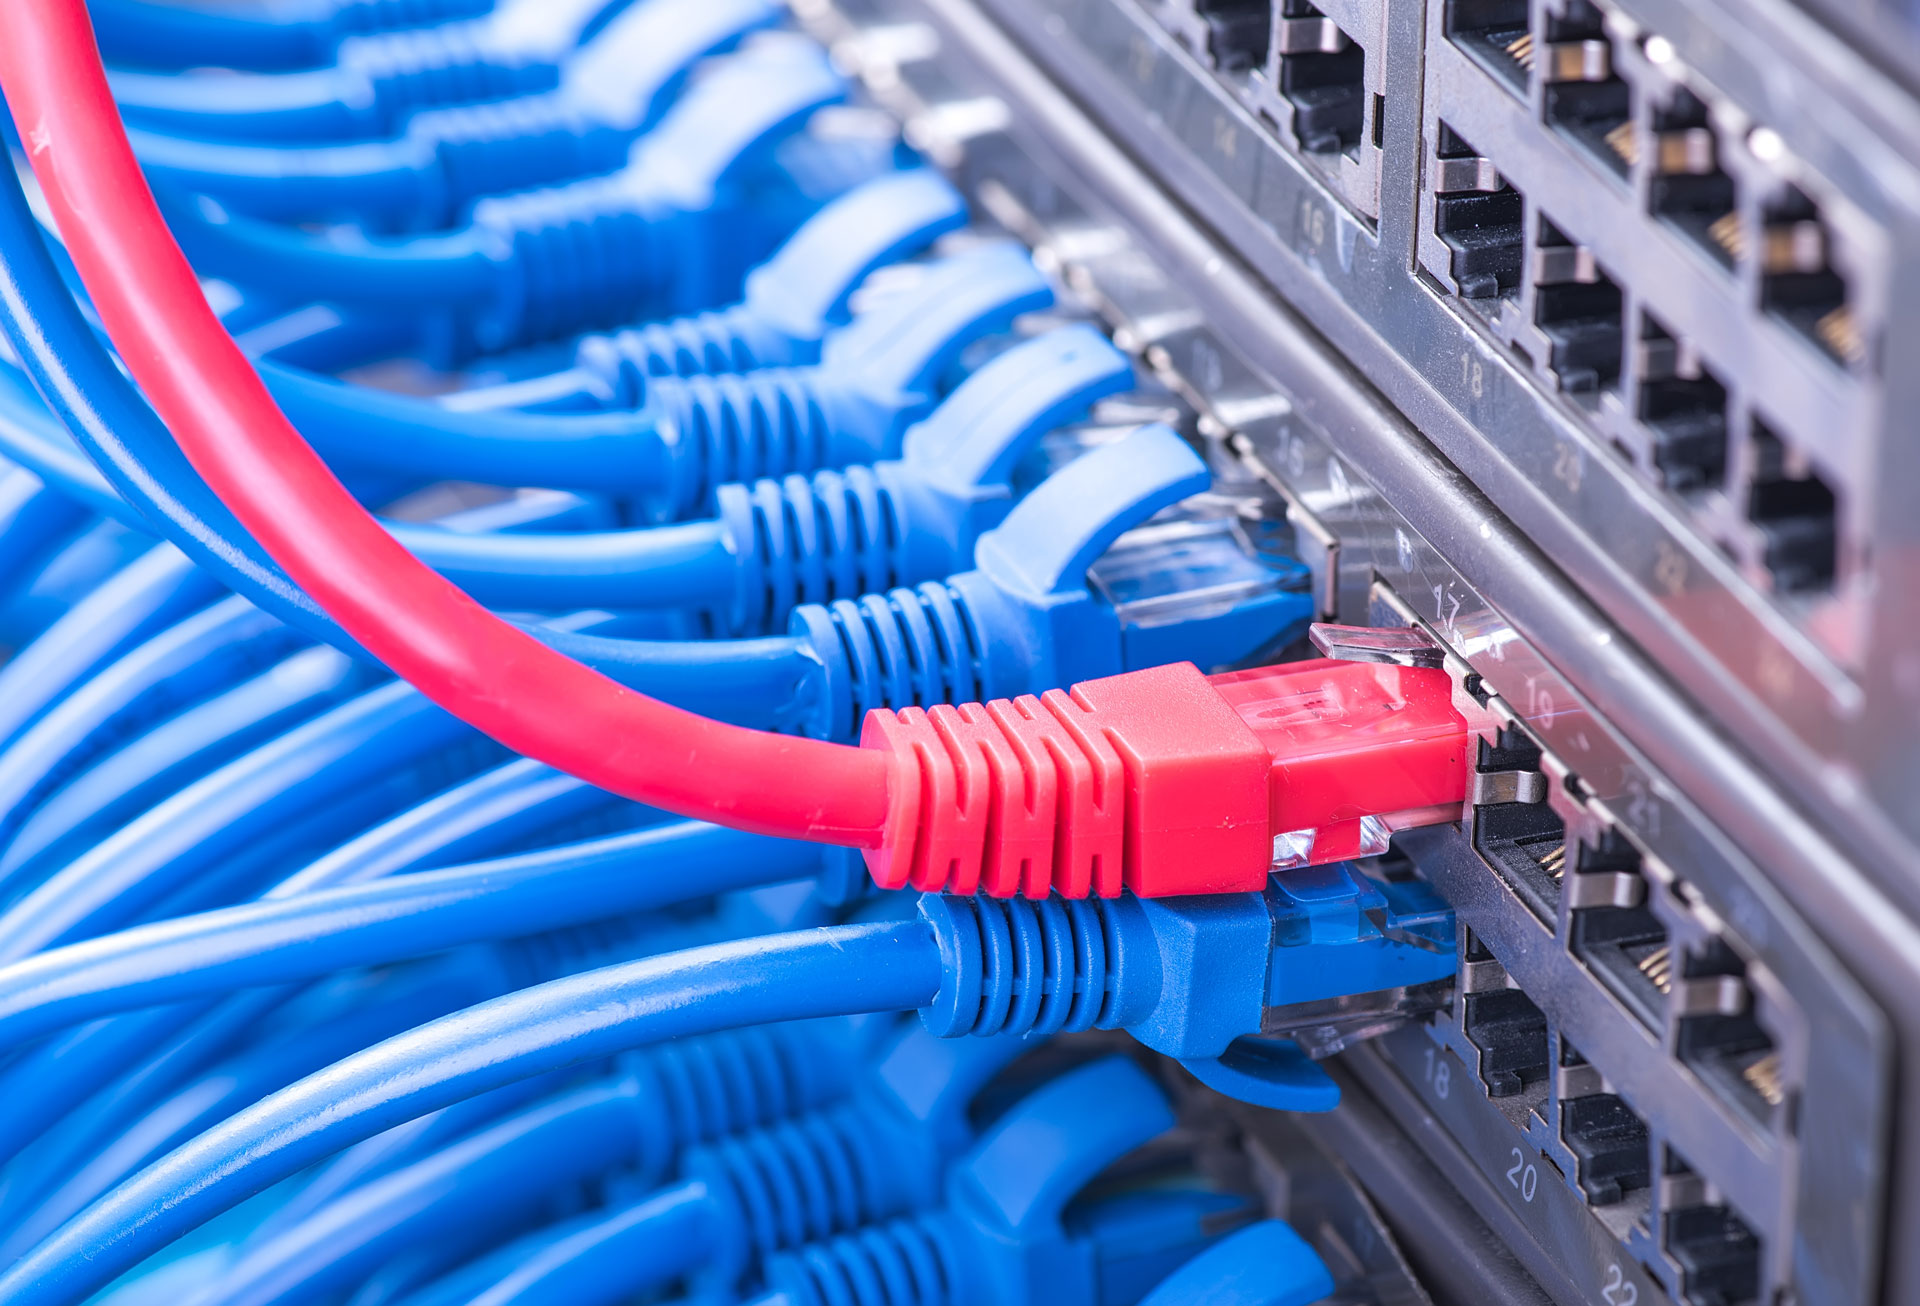 Ethernet Cabling Installation Services from Kace Communications